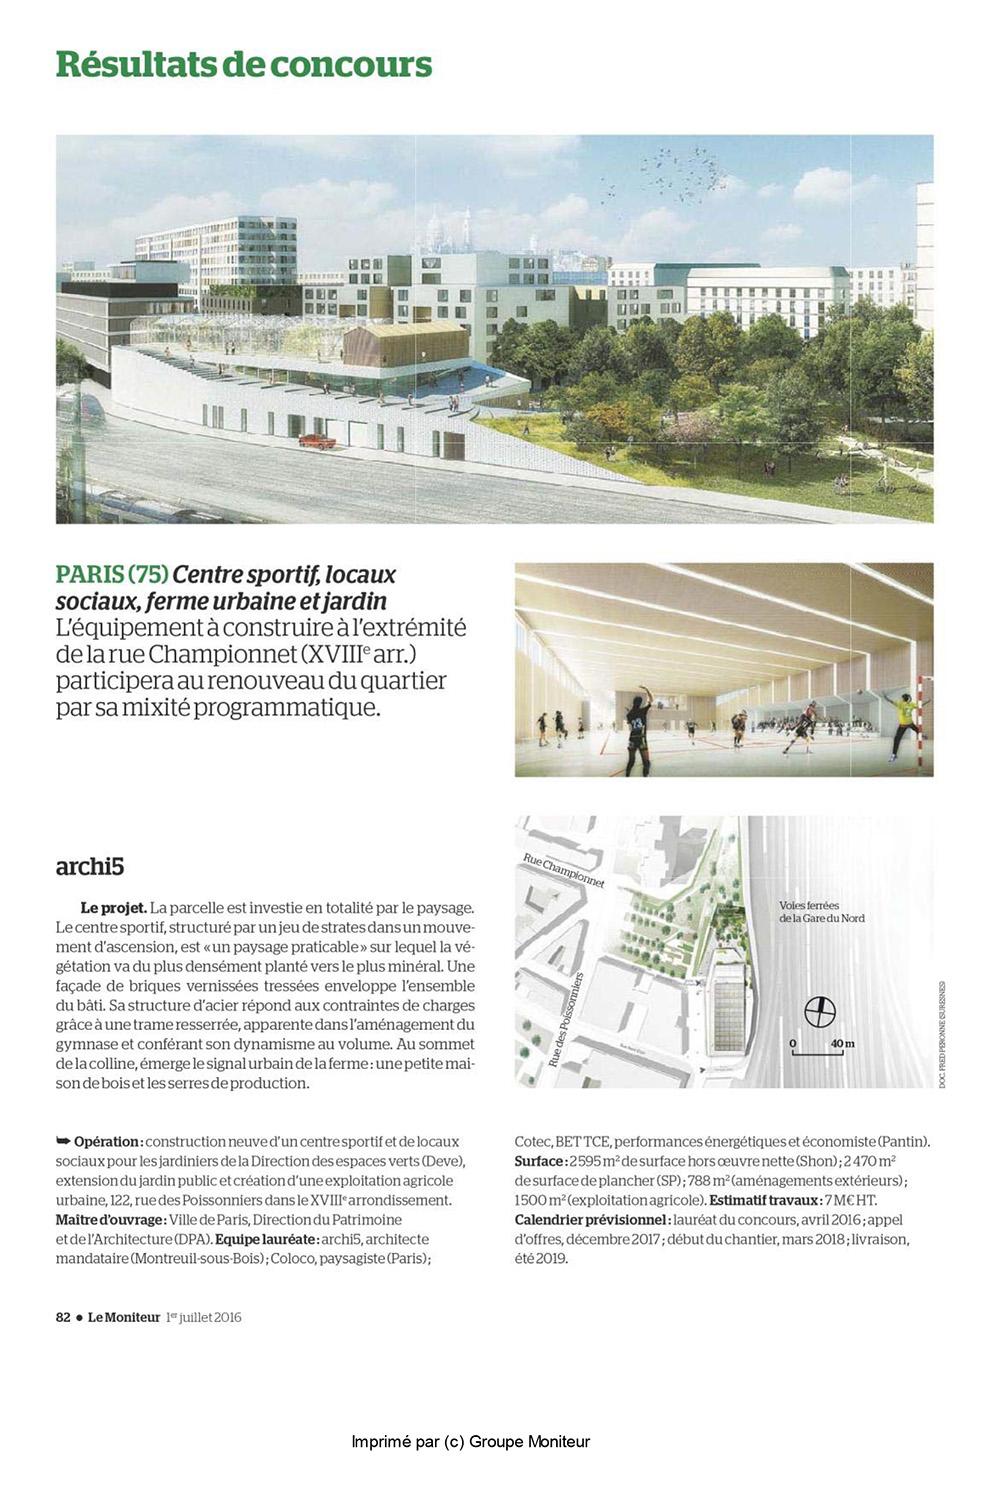 Le moniteur poissonniers sports centre paris archi5 for Exemple contrat entretien espaces verts